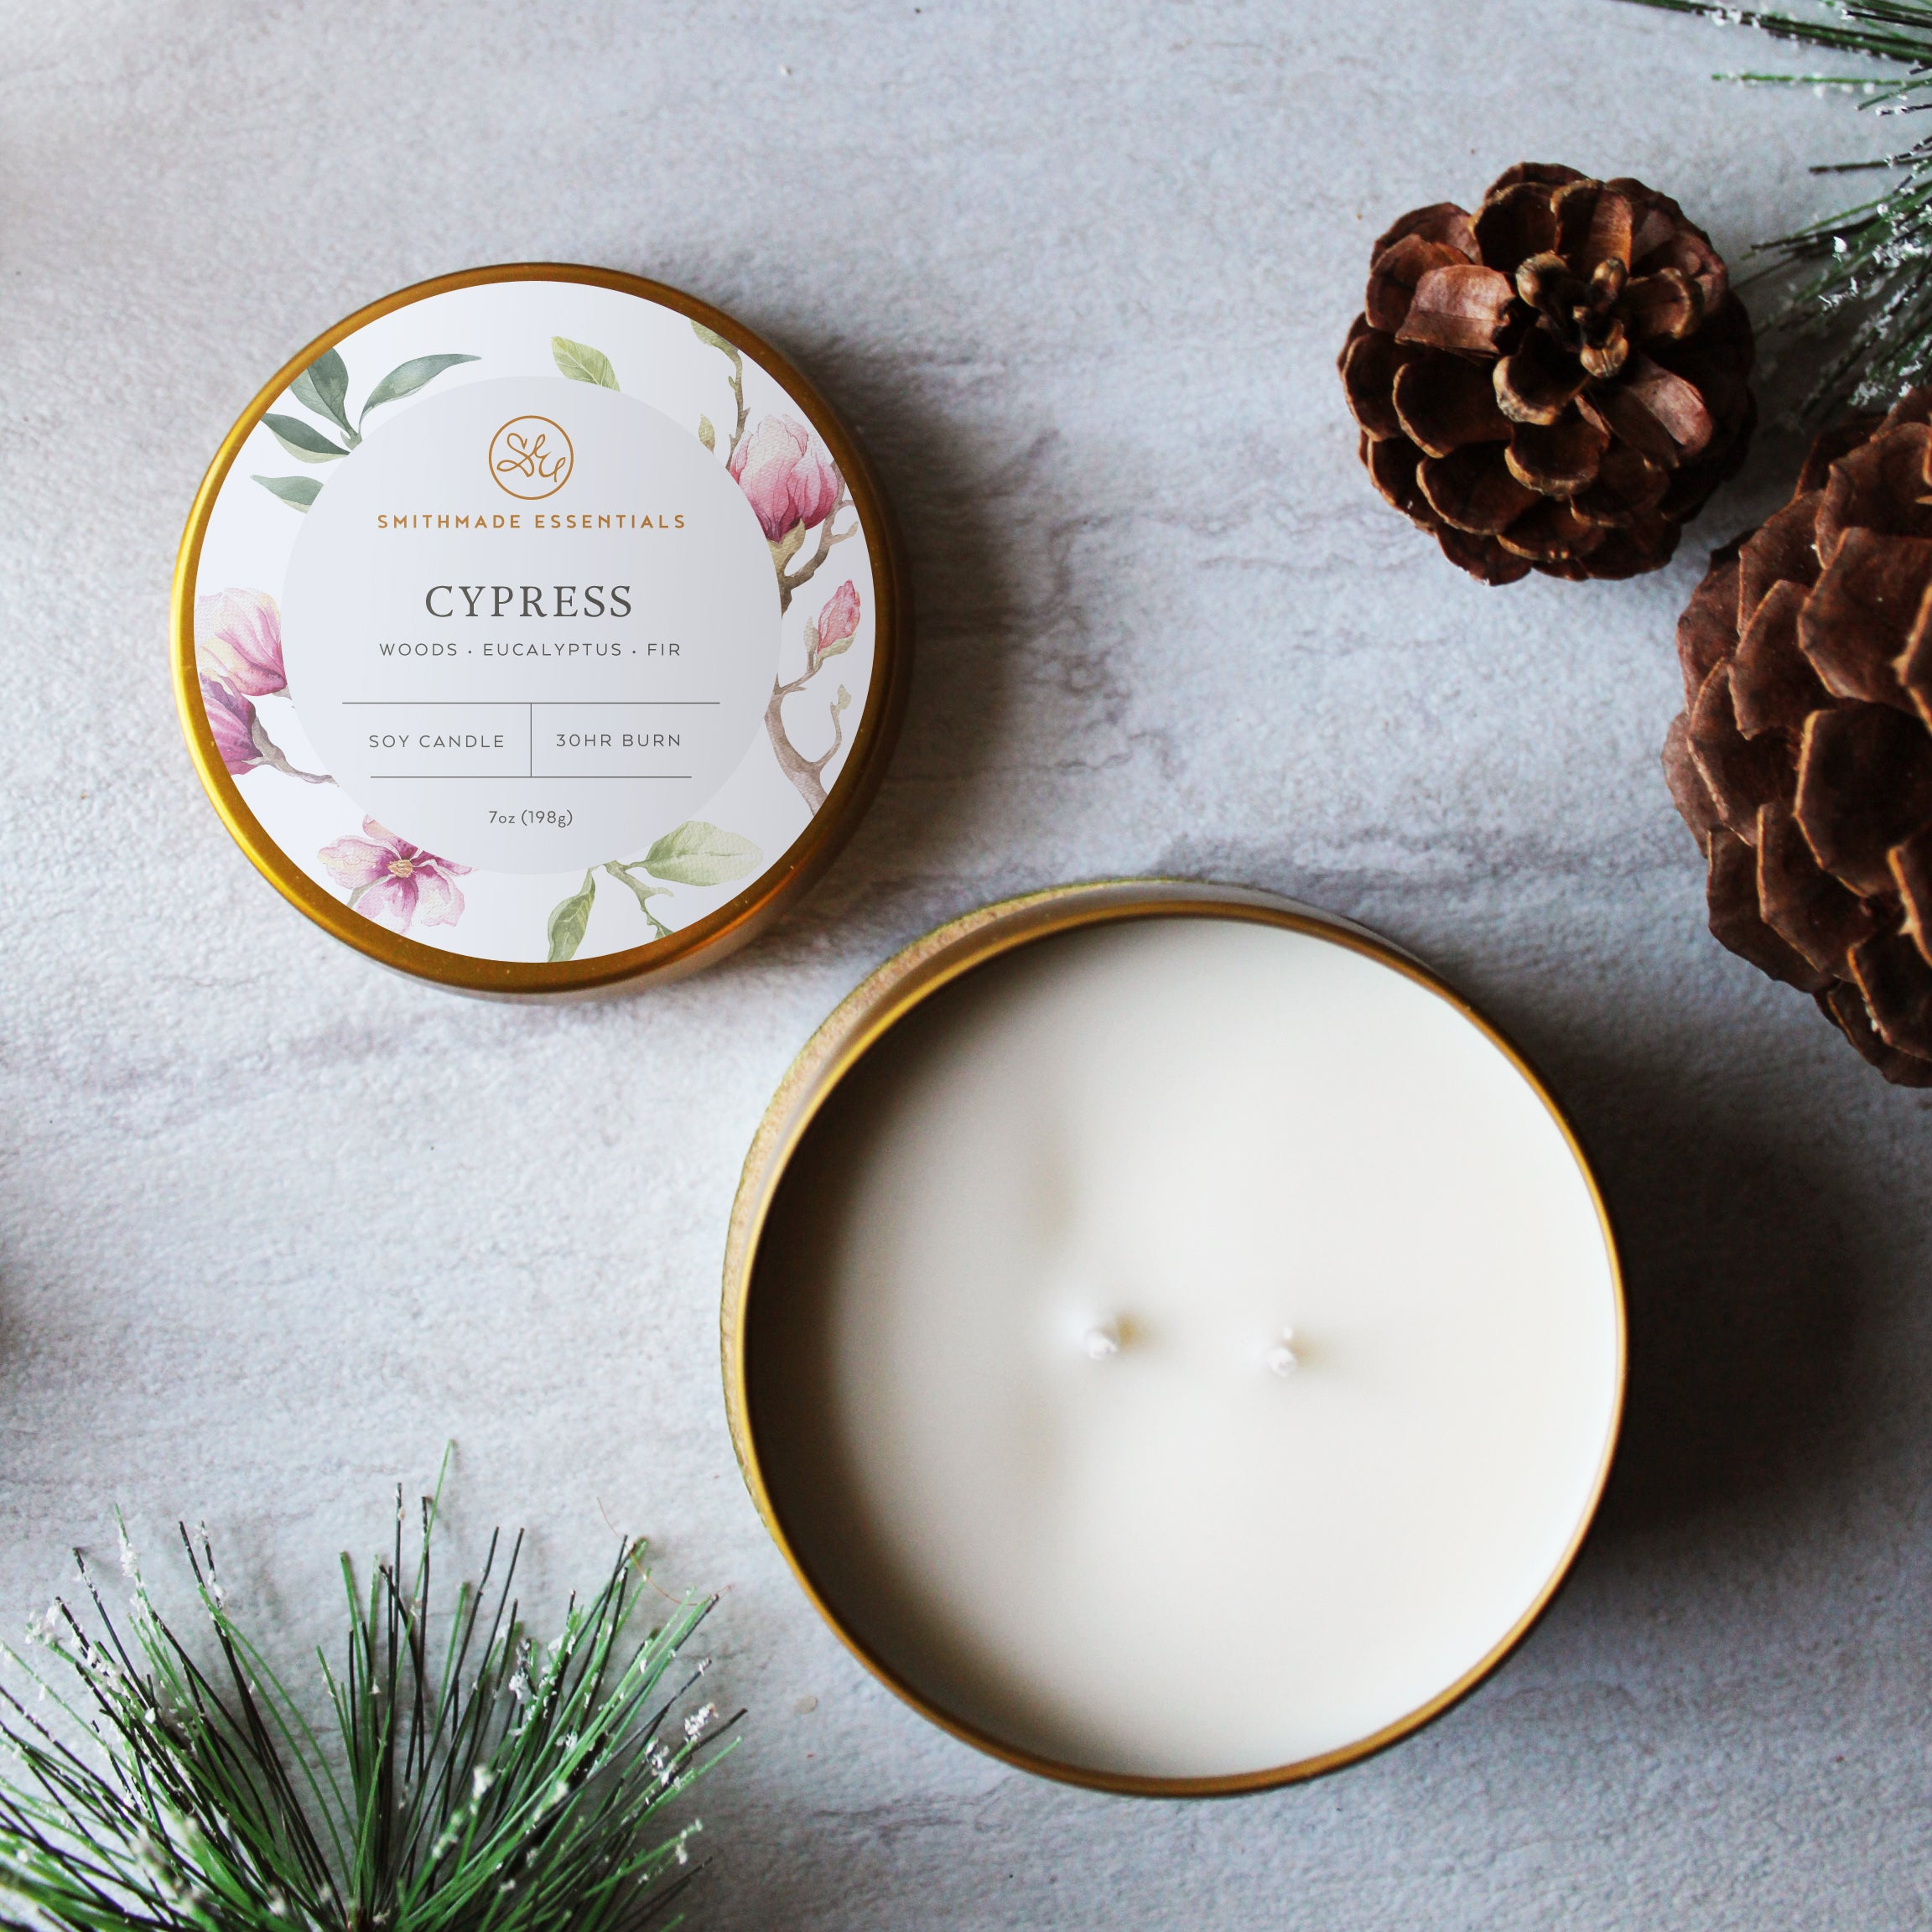 Cypress Soy Candle